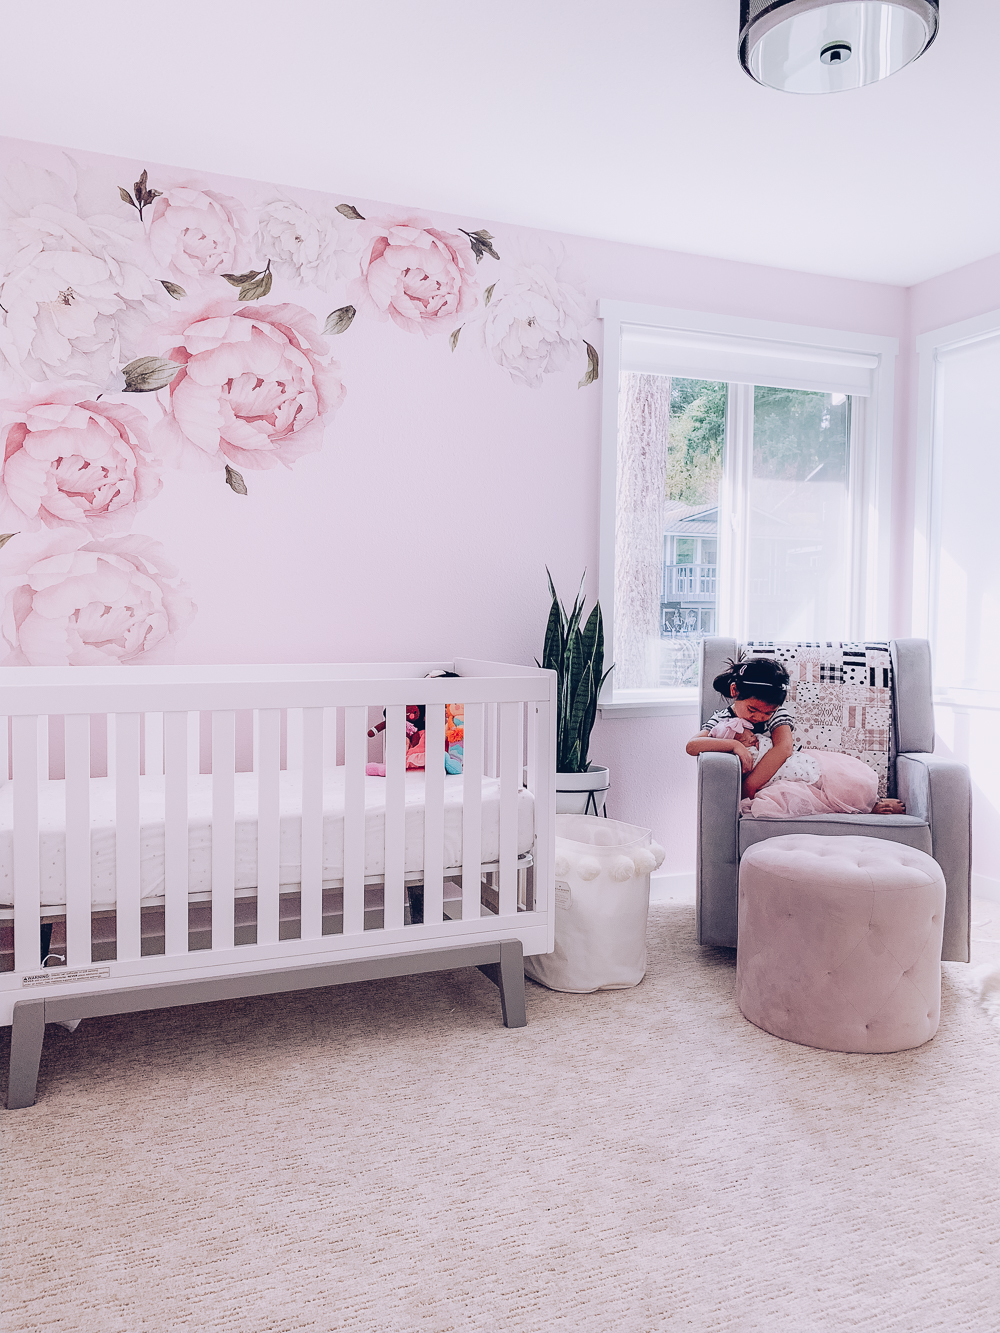 Nursery Reveal: Pink and gray floral nursery decor